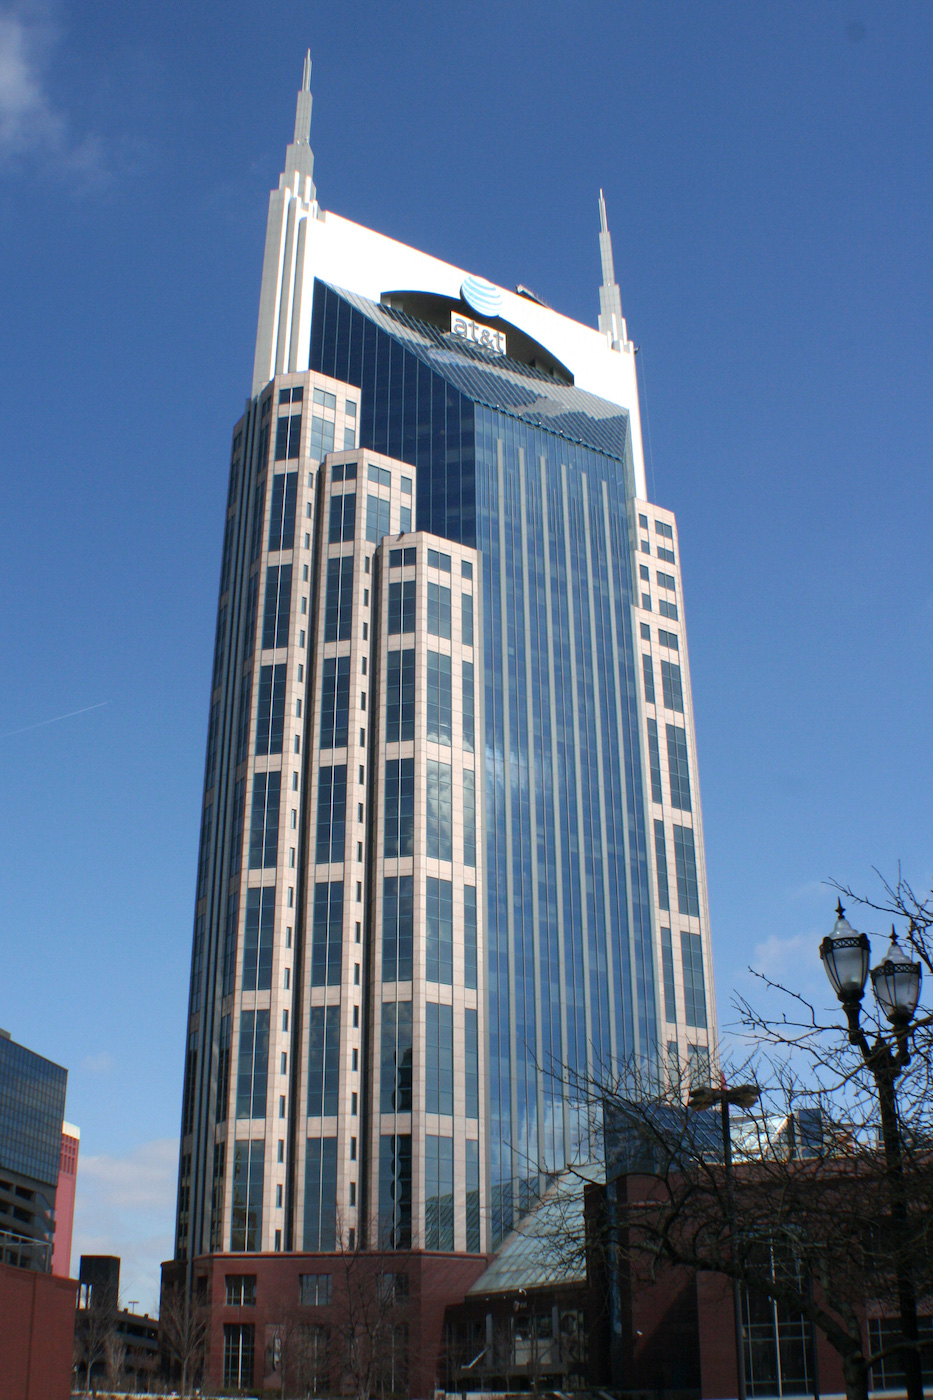 The AT&T Building in Nashville, Tennessee (photo by Kaldari/Wikimedia)